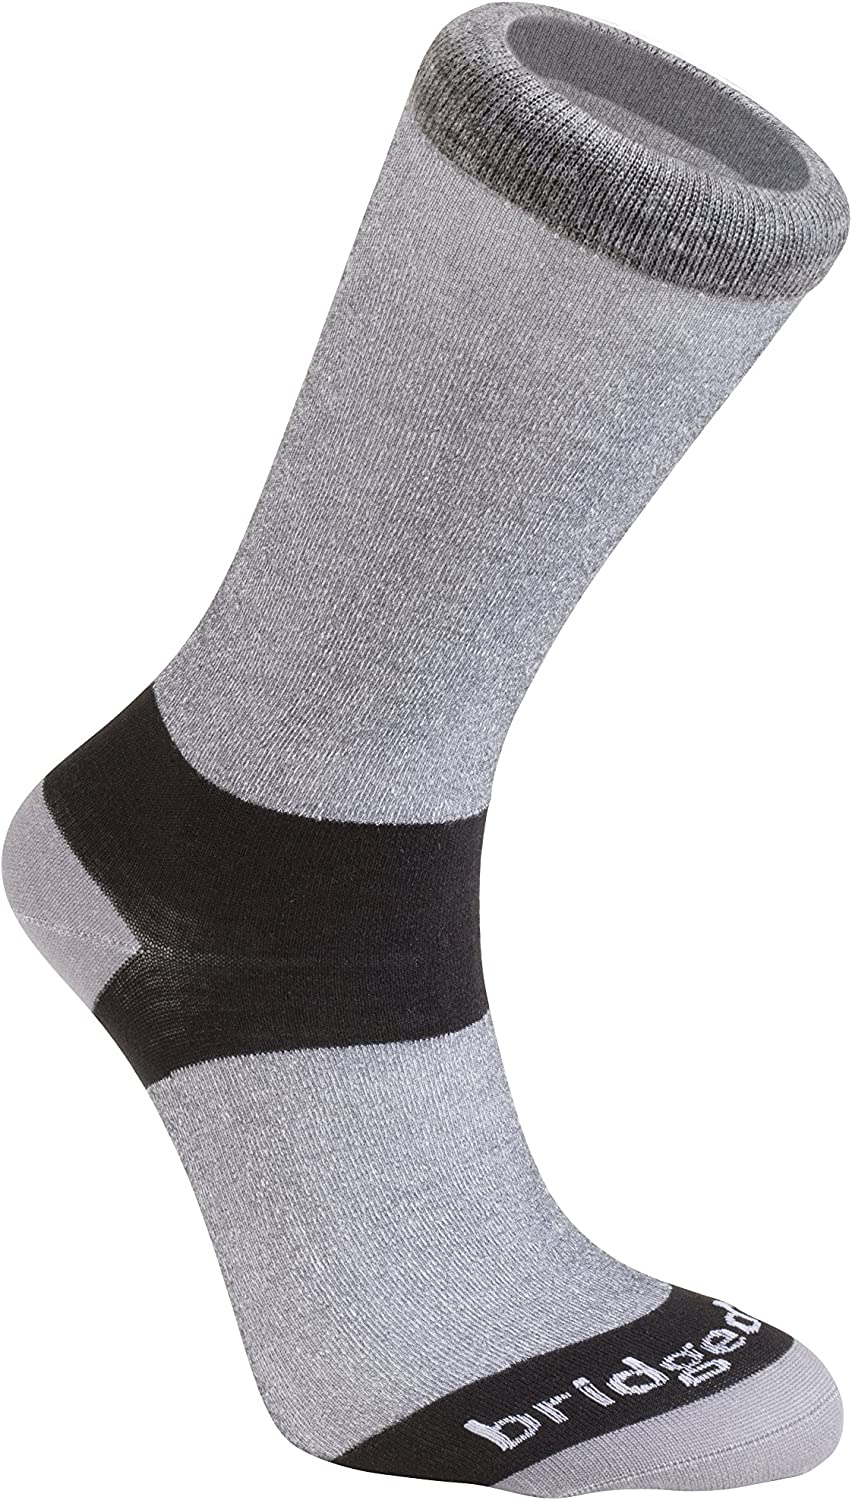 Bridgedale mens Coolmax Base Layer Liner Socks - 2 Pack